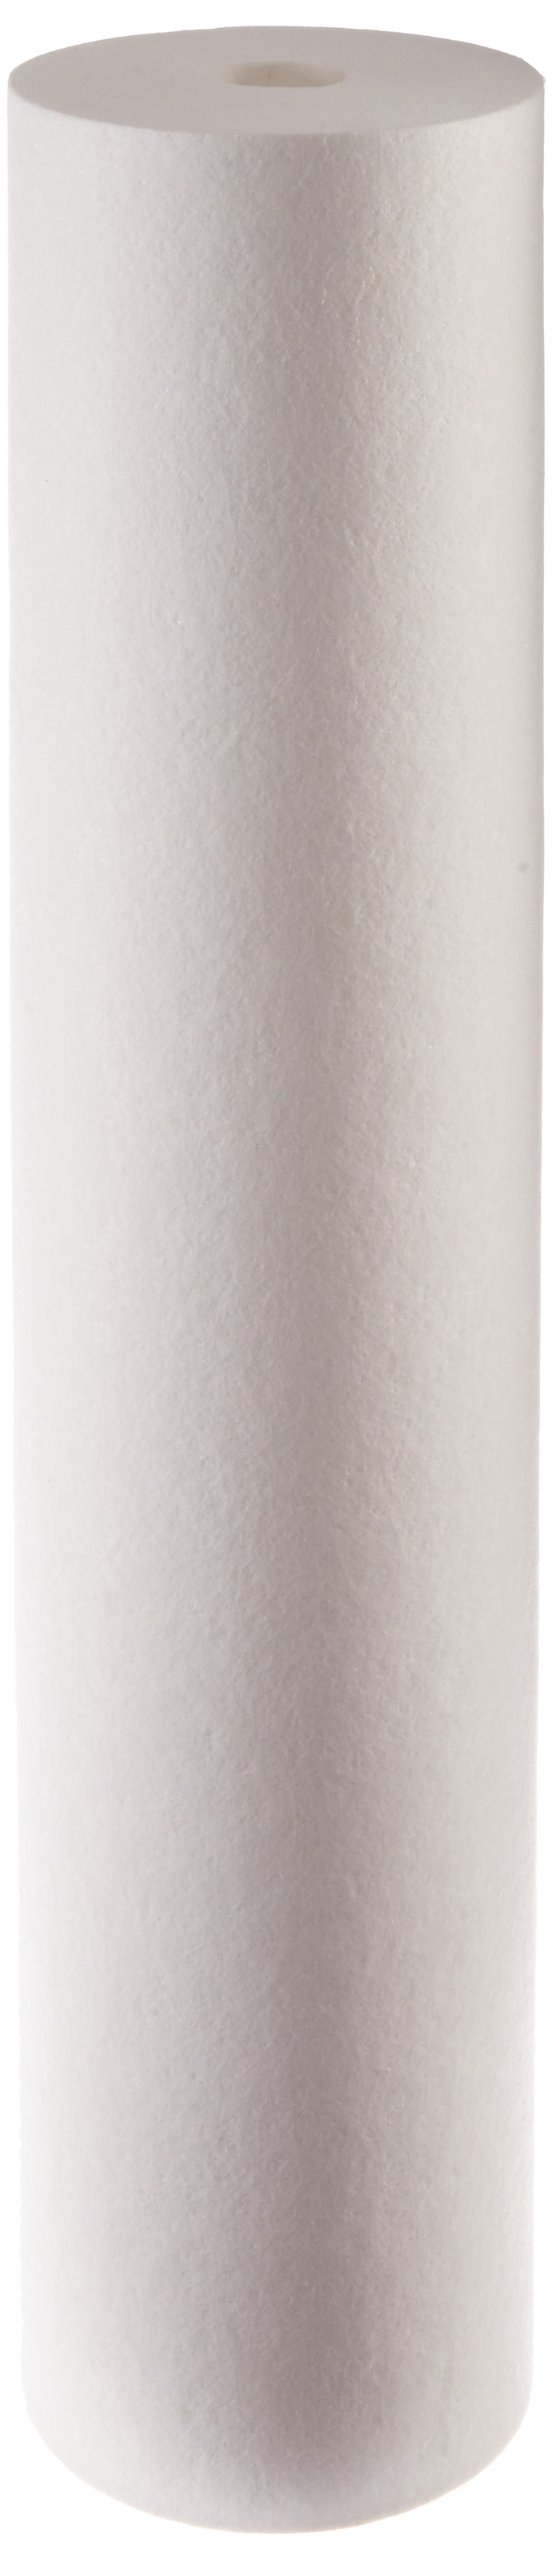 Pentek DGD-2501-20 Spun Polypropylene Filter Cartridge, 20'' x 4-1/2''